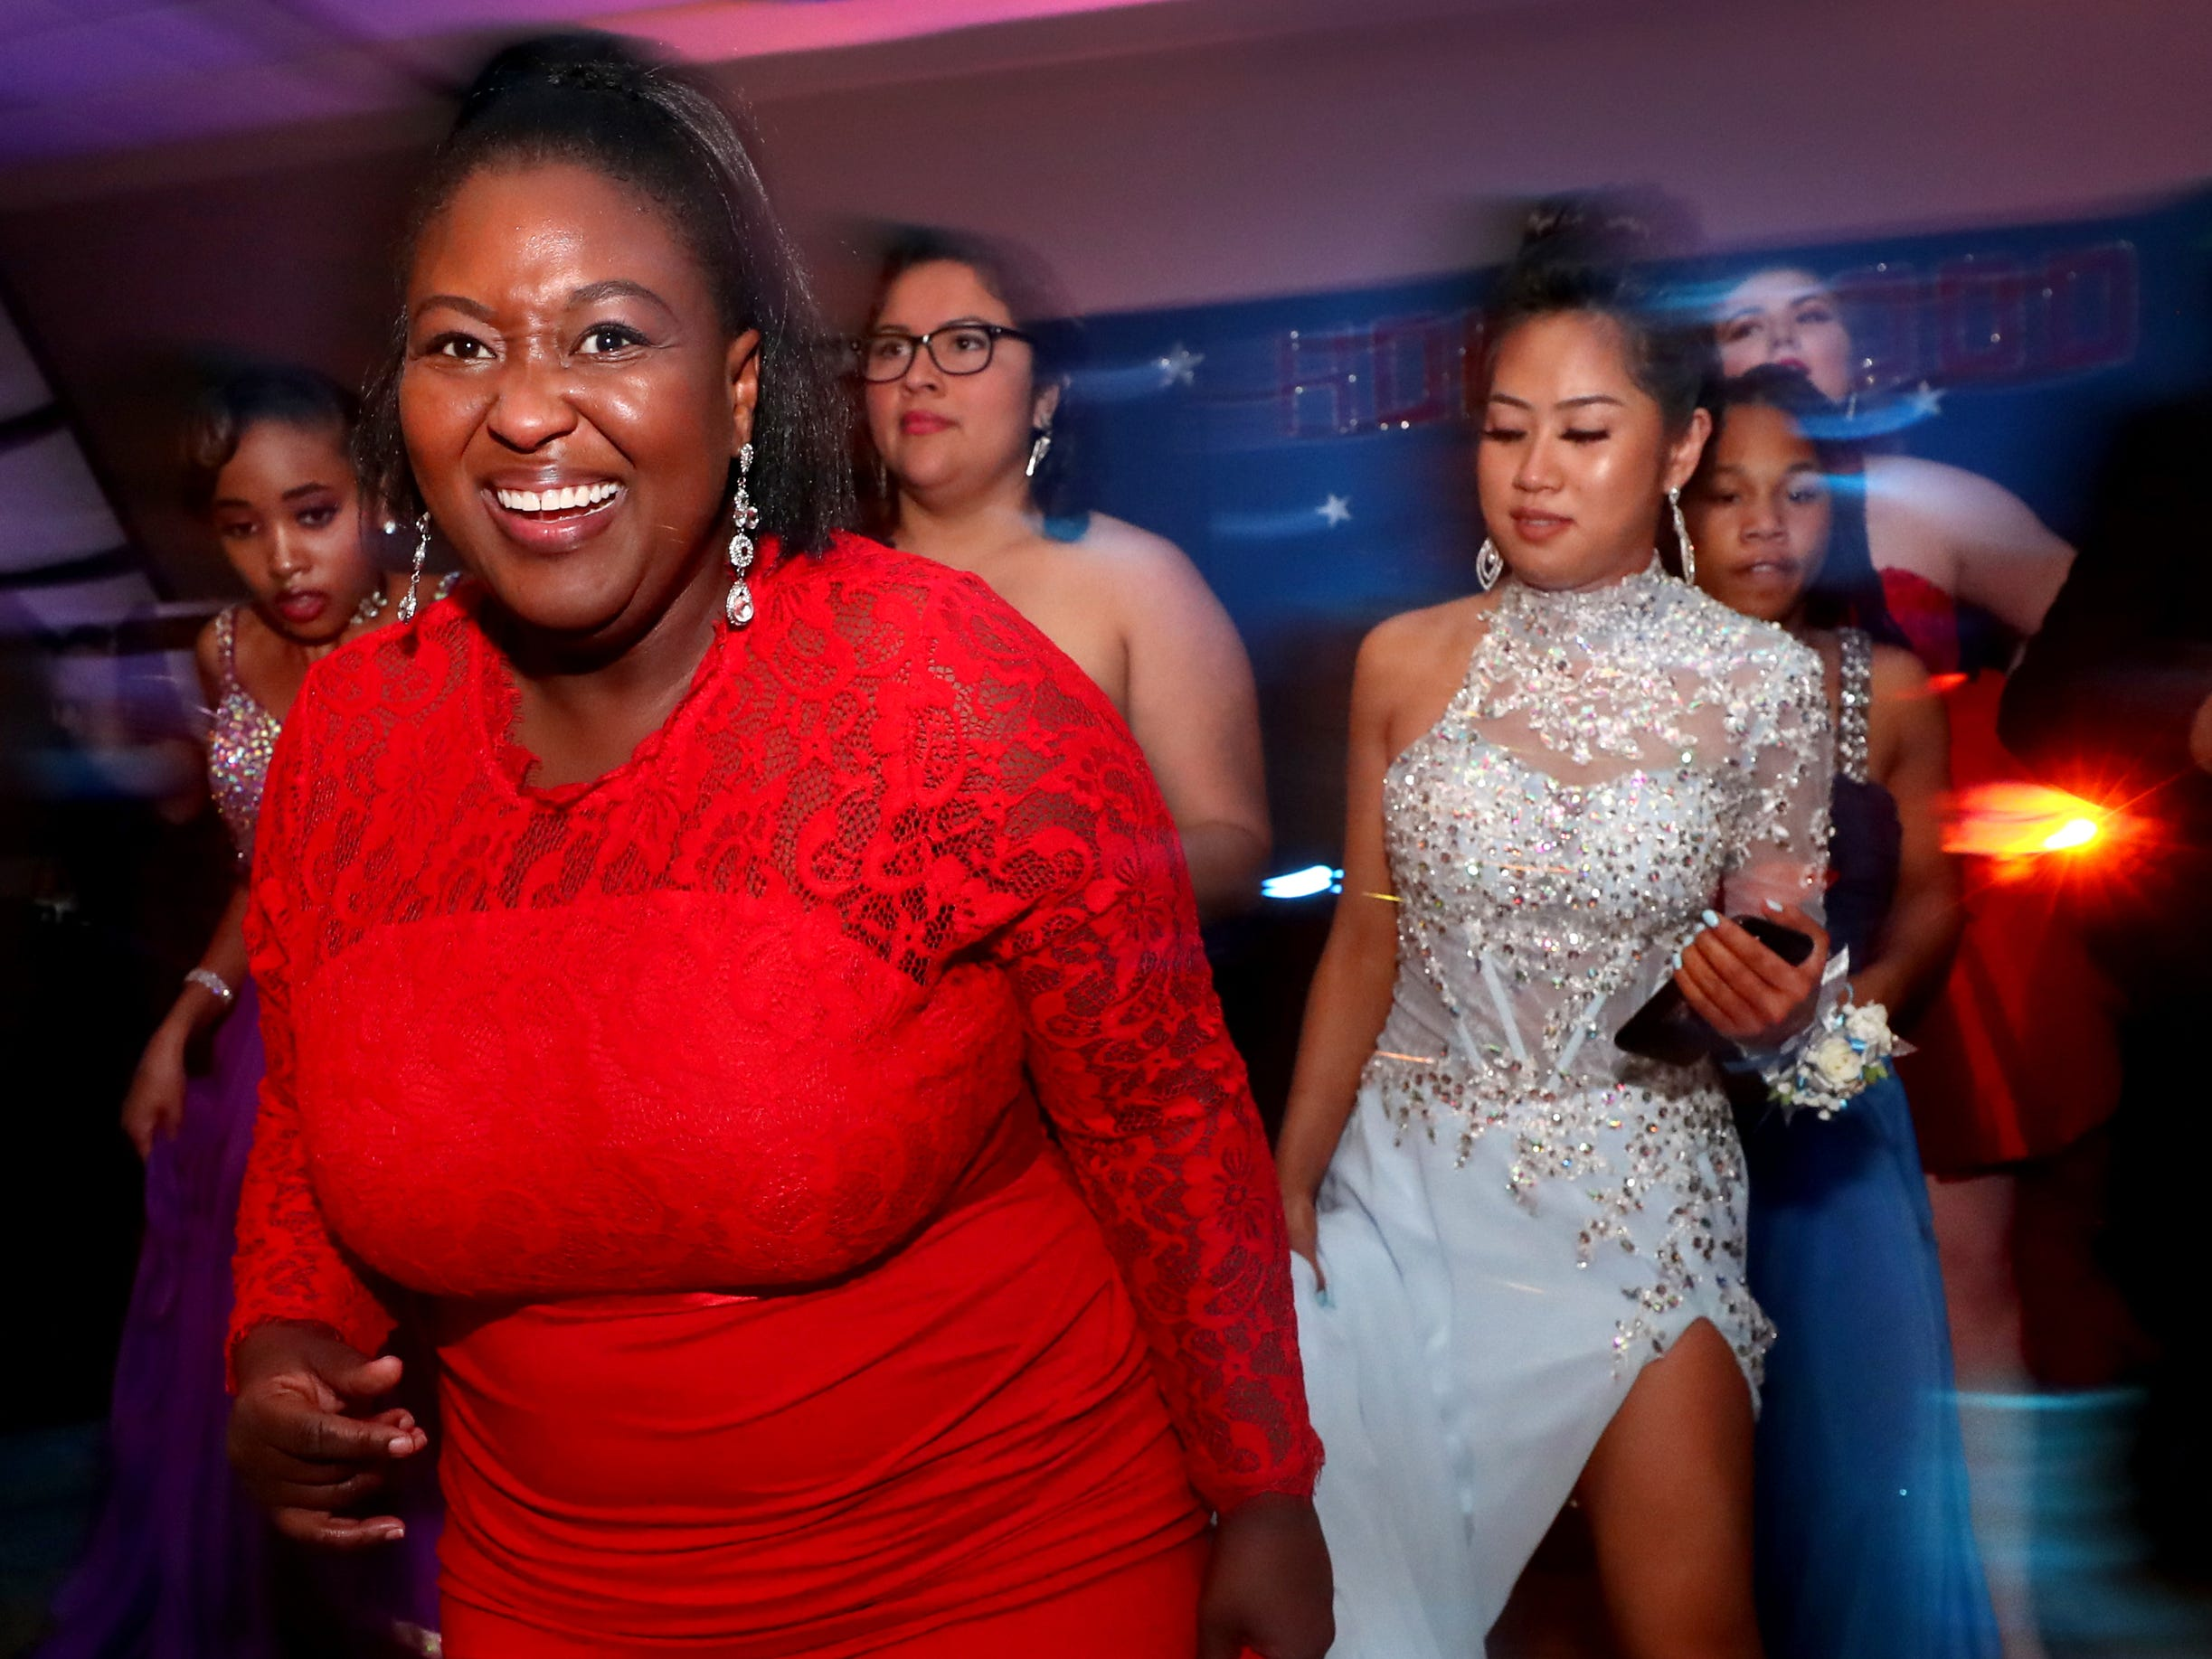 Sheneka Hernandez dances on the dance floor at Holloway's prom at the DoubleTree on Thursday April 18, 2019.